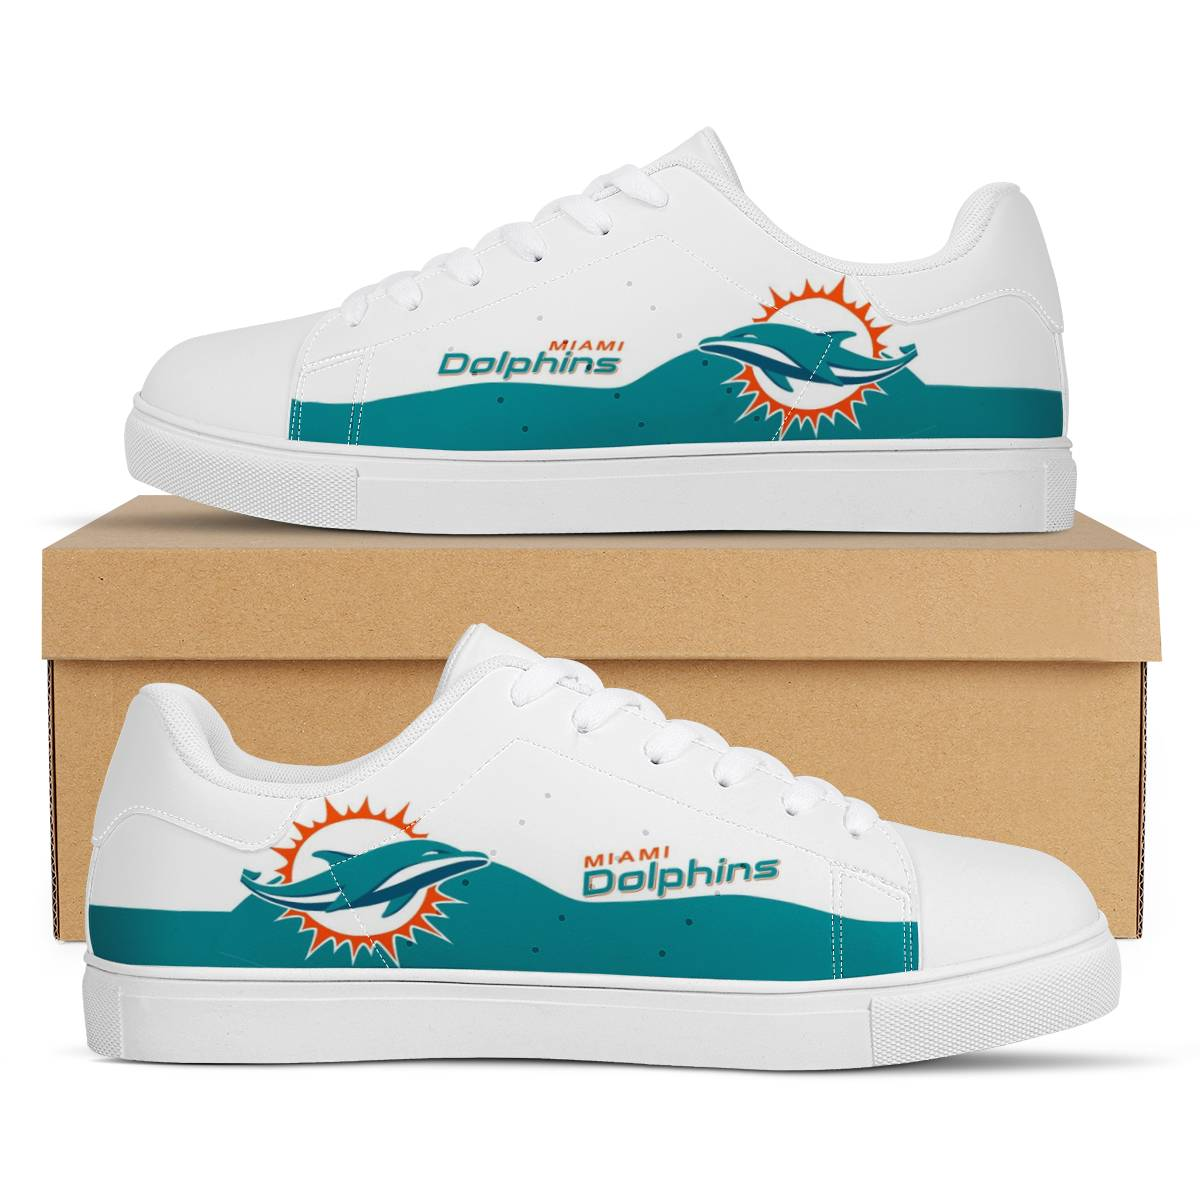 Men's Miami Dolphins Low Top Leather Sneakers 003